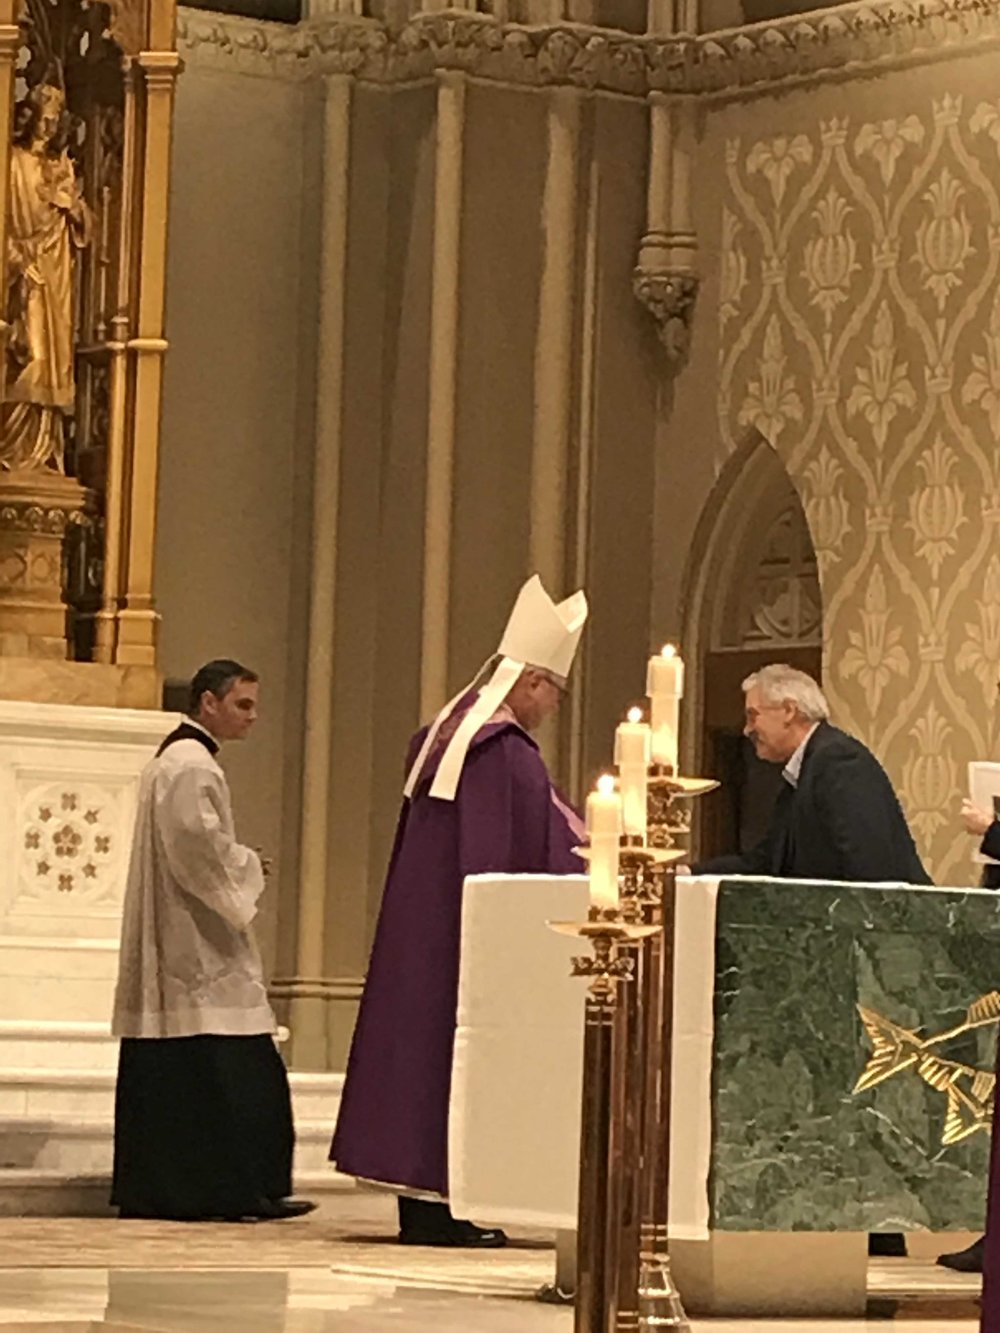 Bishop Tobin greets Al Behbehani.